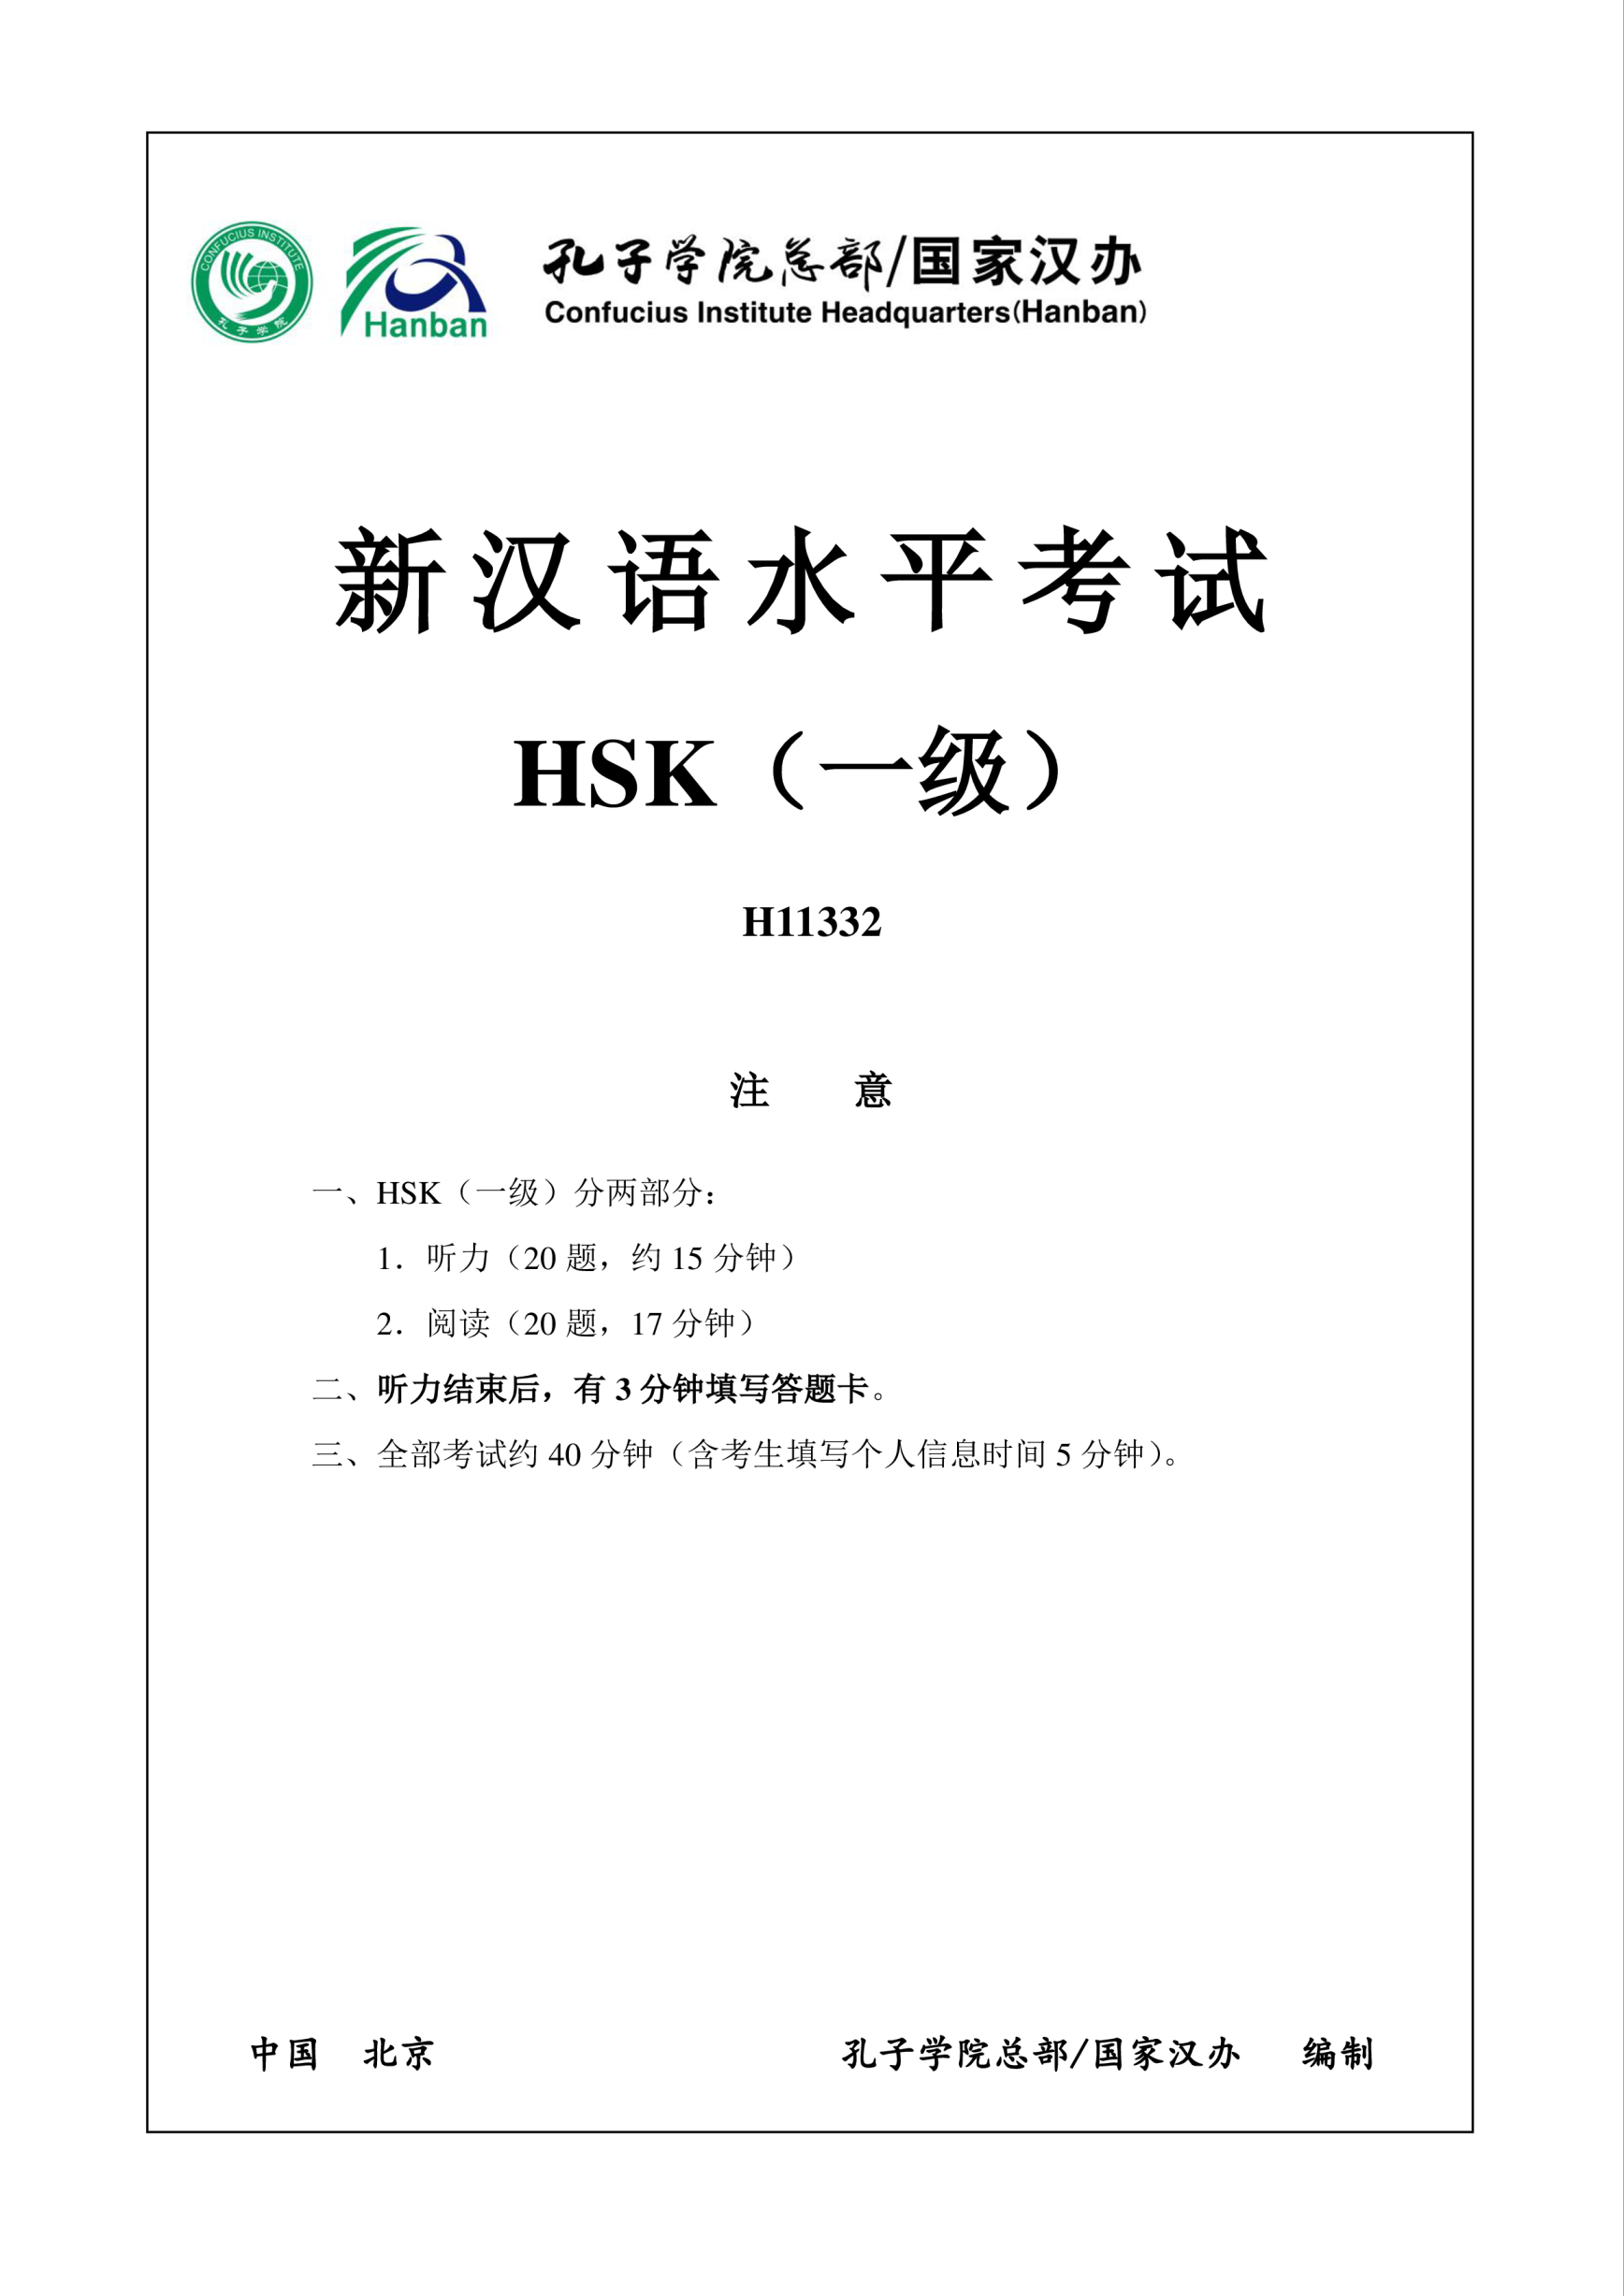 template preview imageHSK1 Chinese Exam including Answers # HSK1 H11332